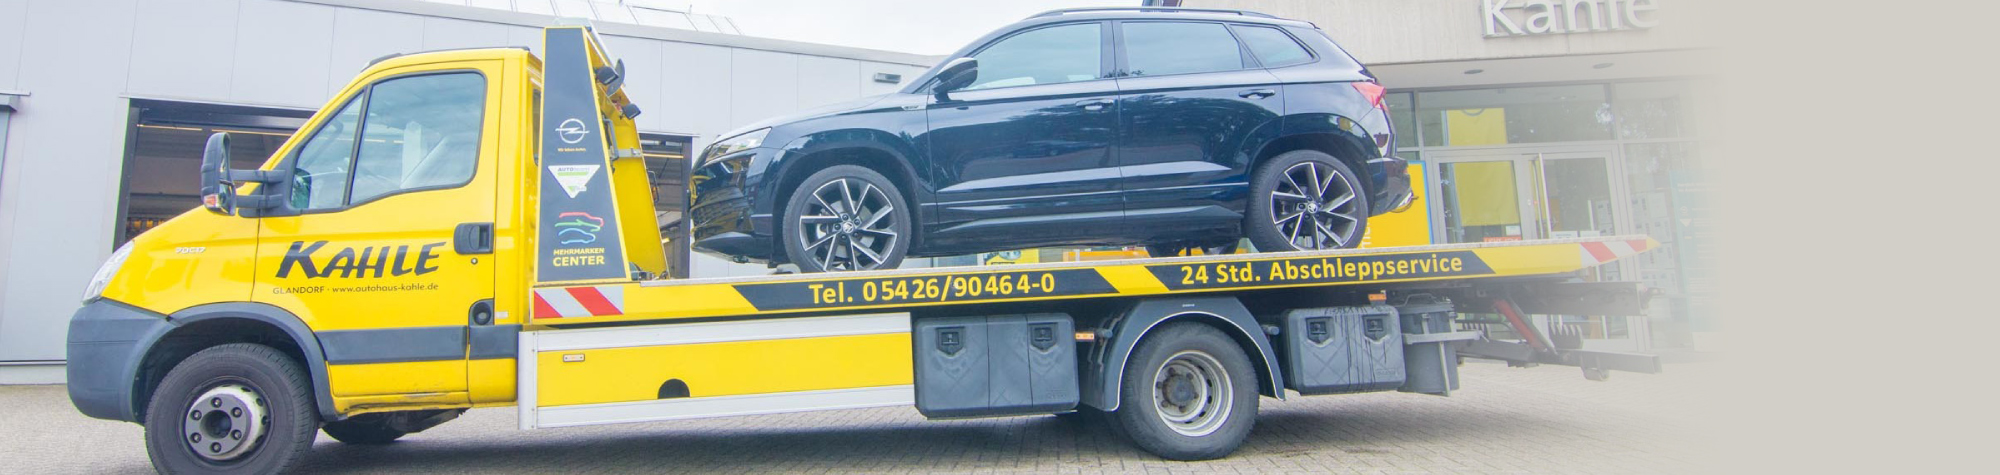 24-Std-Abschleppservice - Autohaus Kahle